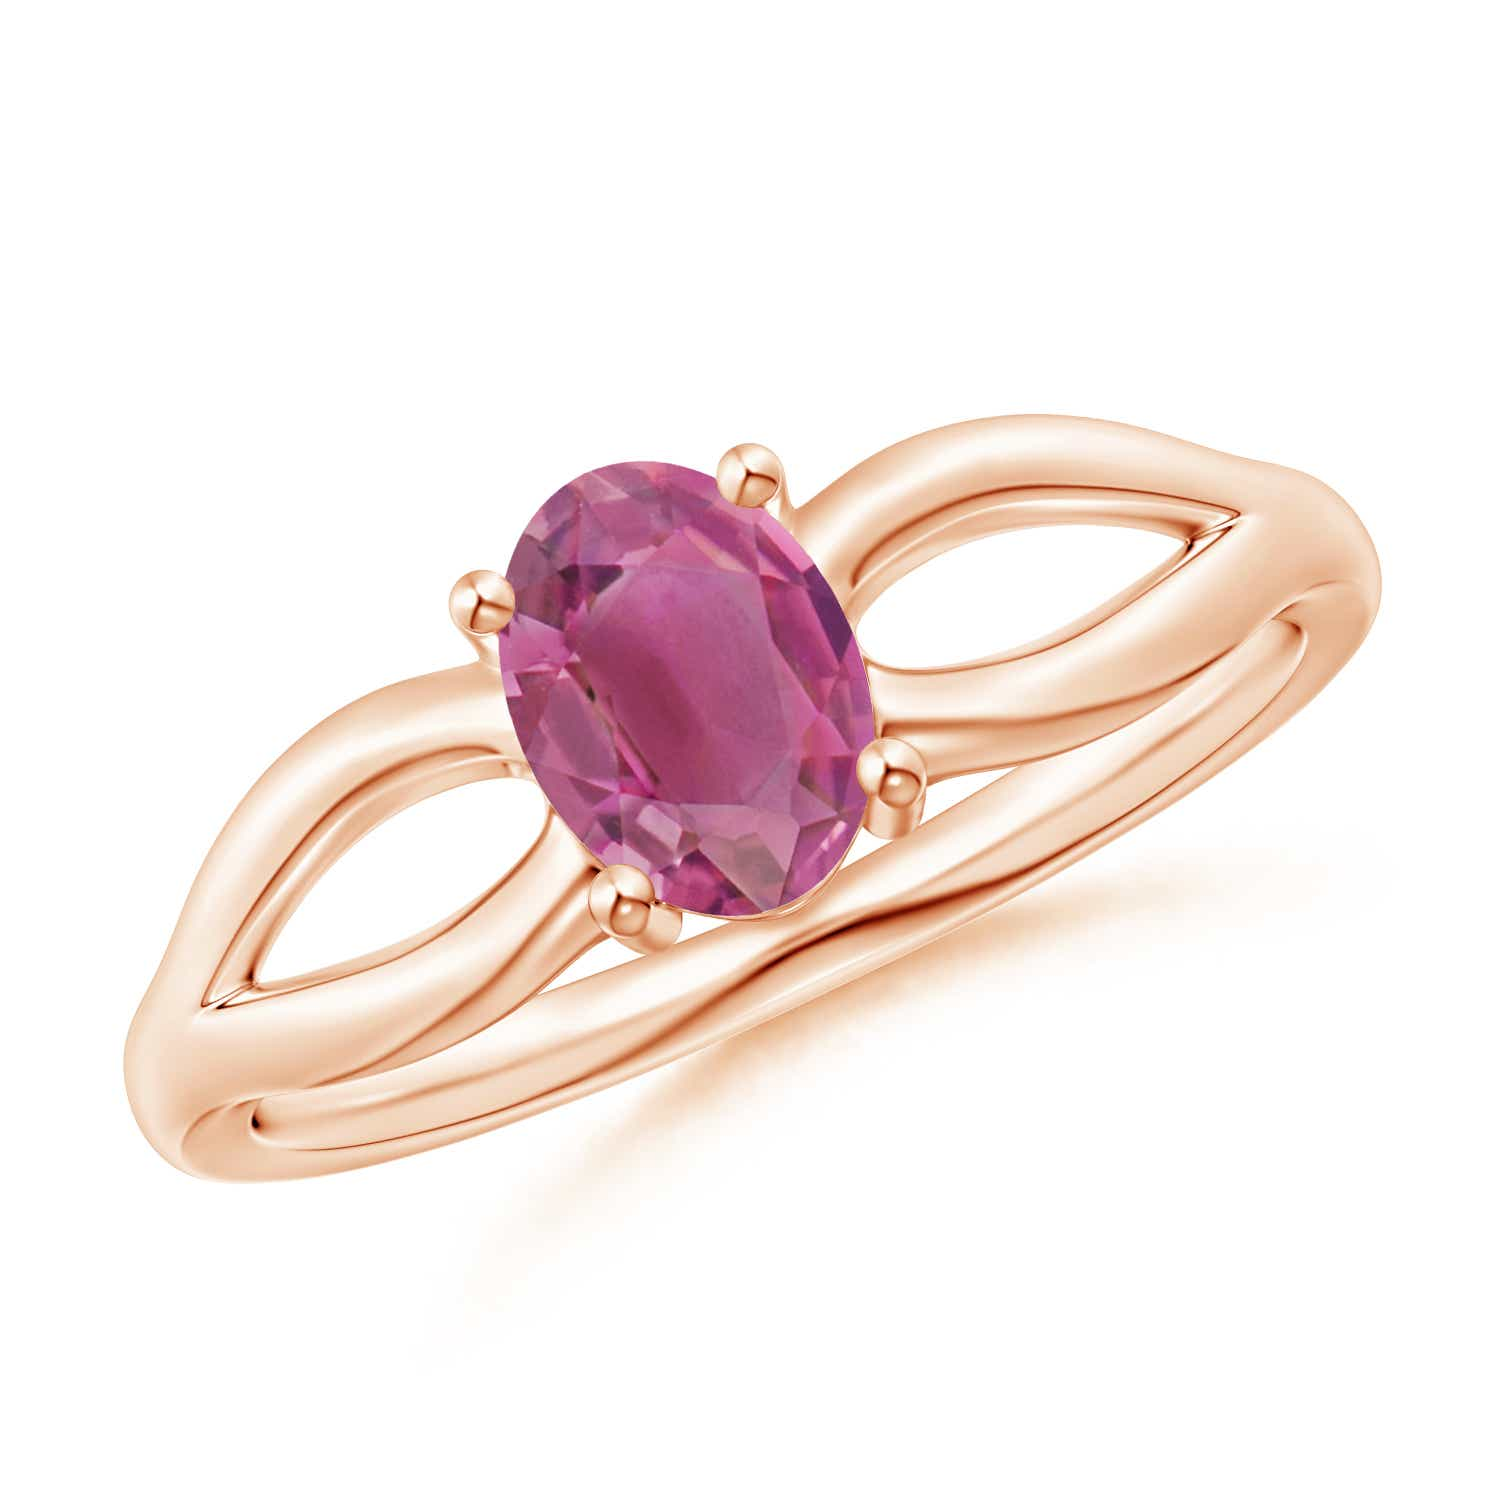 Prong-Set Solitaire Pink Tourmaline Split Shank Ring - Angara.com